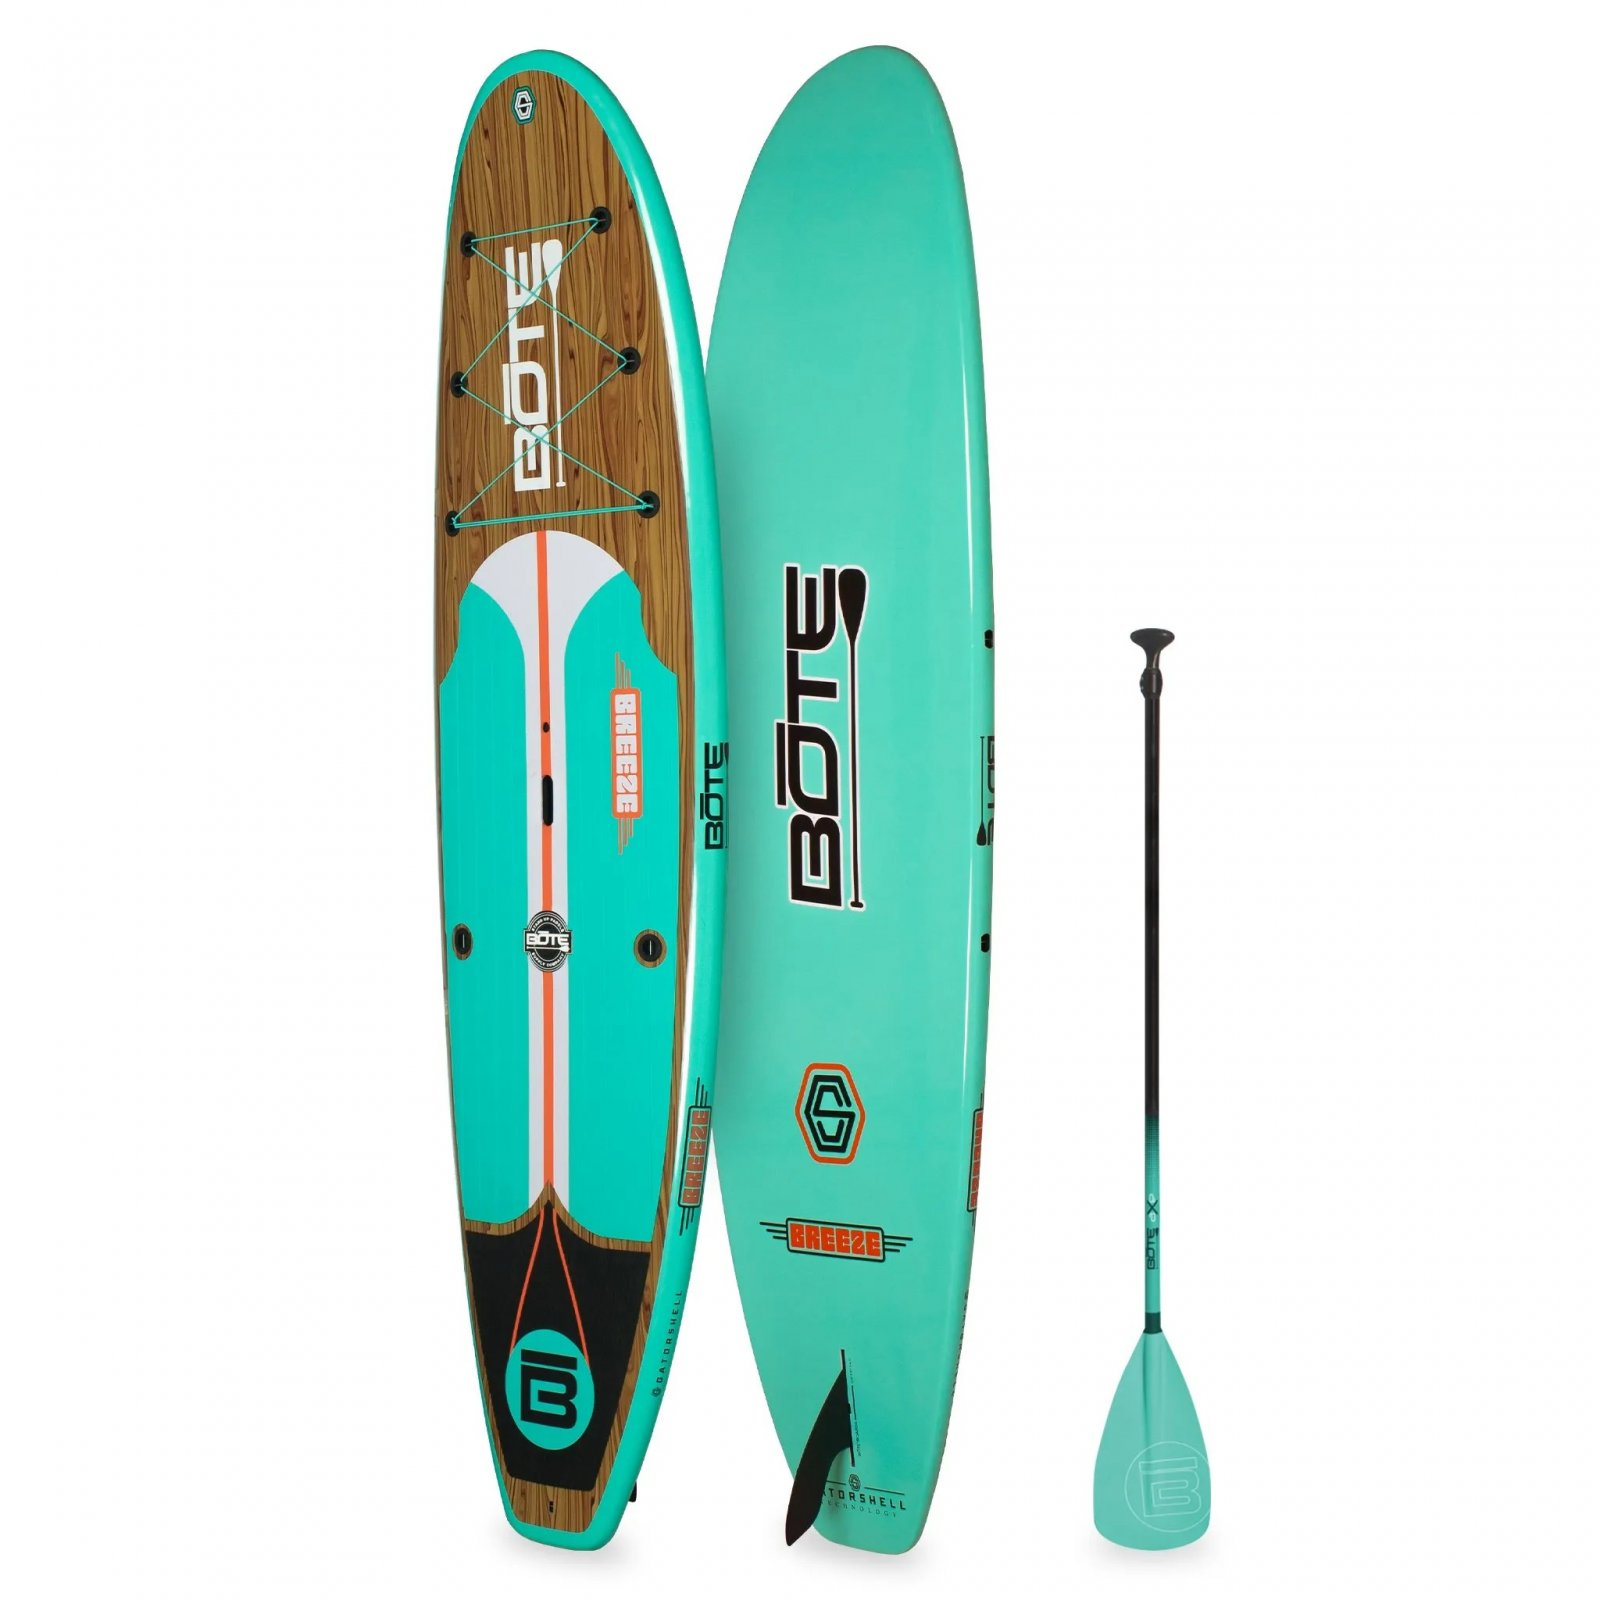 Breeze Gatorshell 10'6